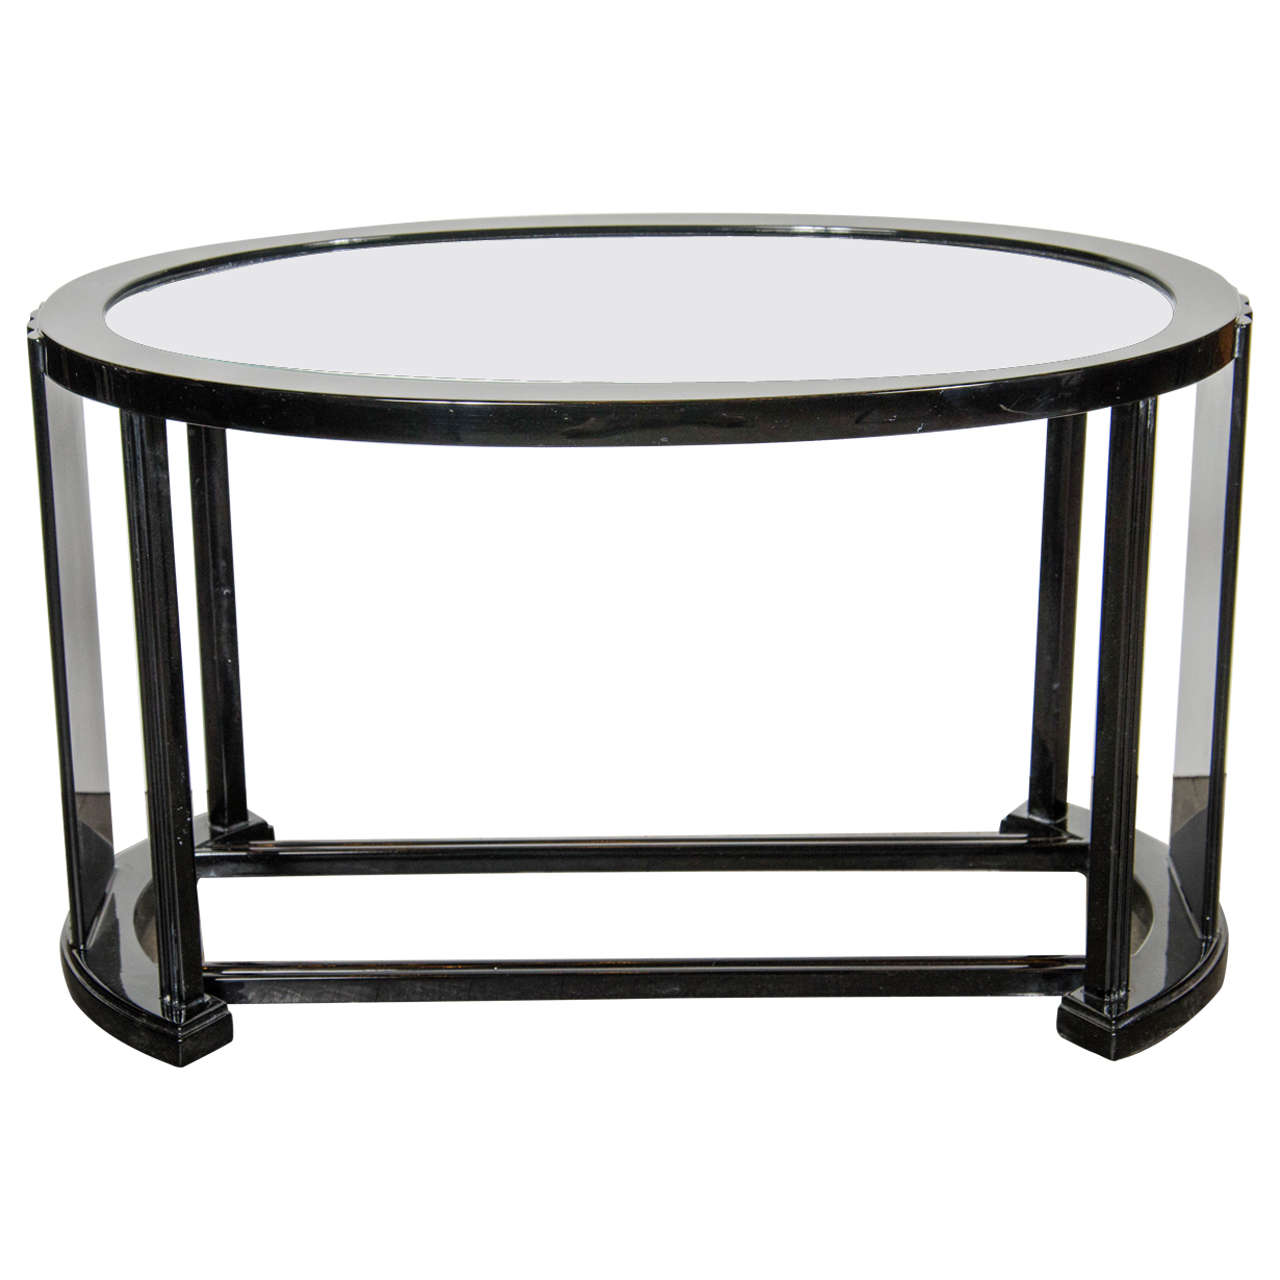 Art Deco Bauhaus Style Cocktail Or Occasional Table In Black Lacquer And Glass For Sale At 1stdibs